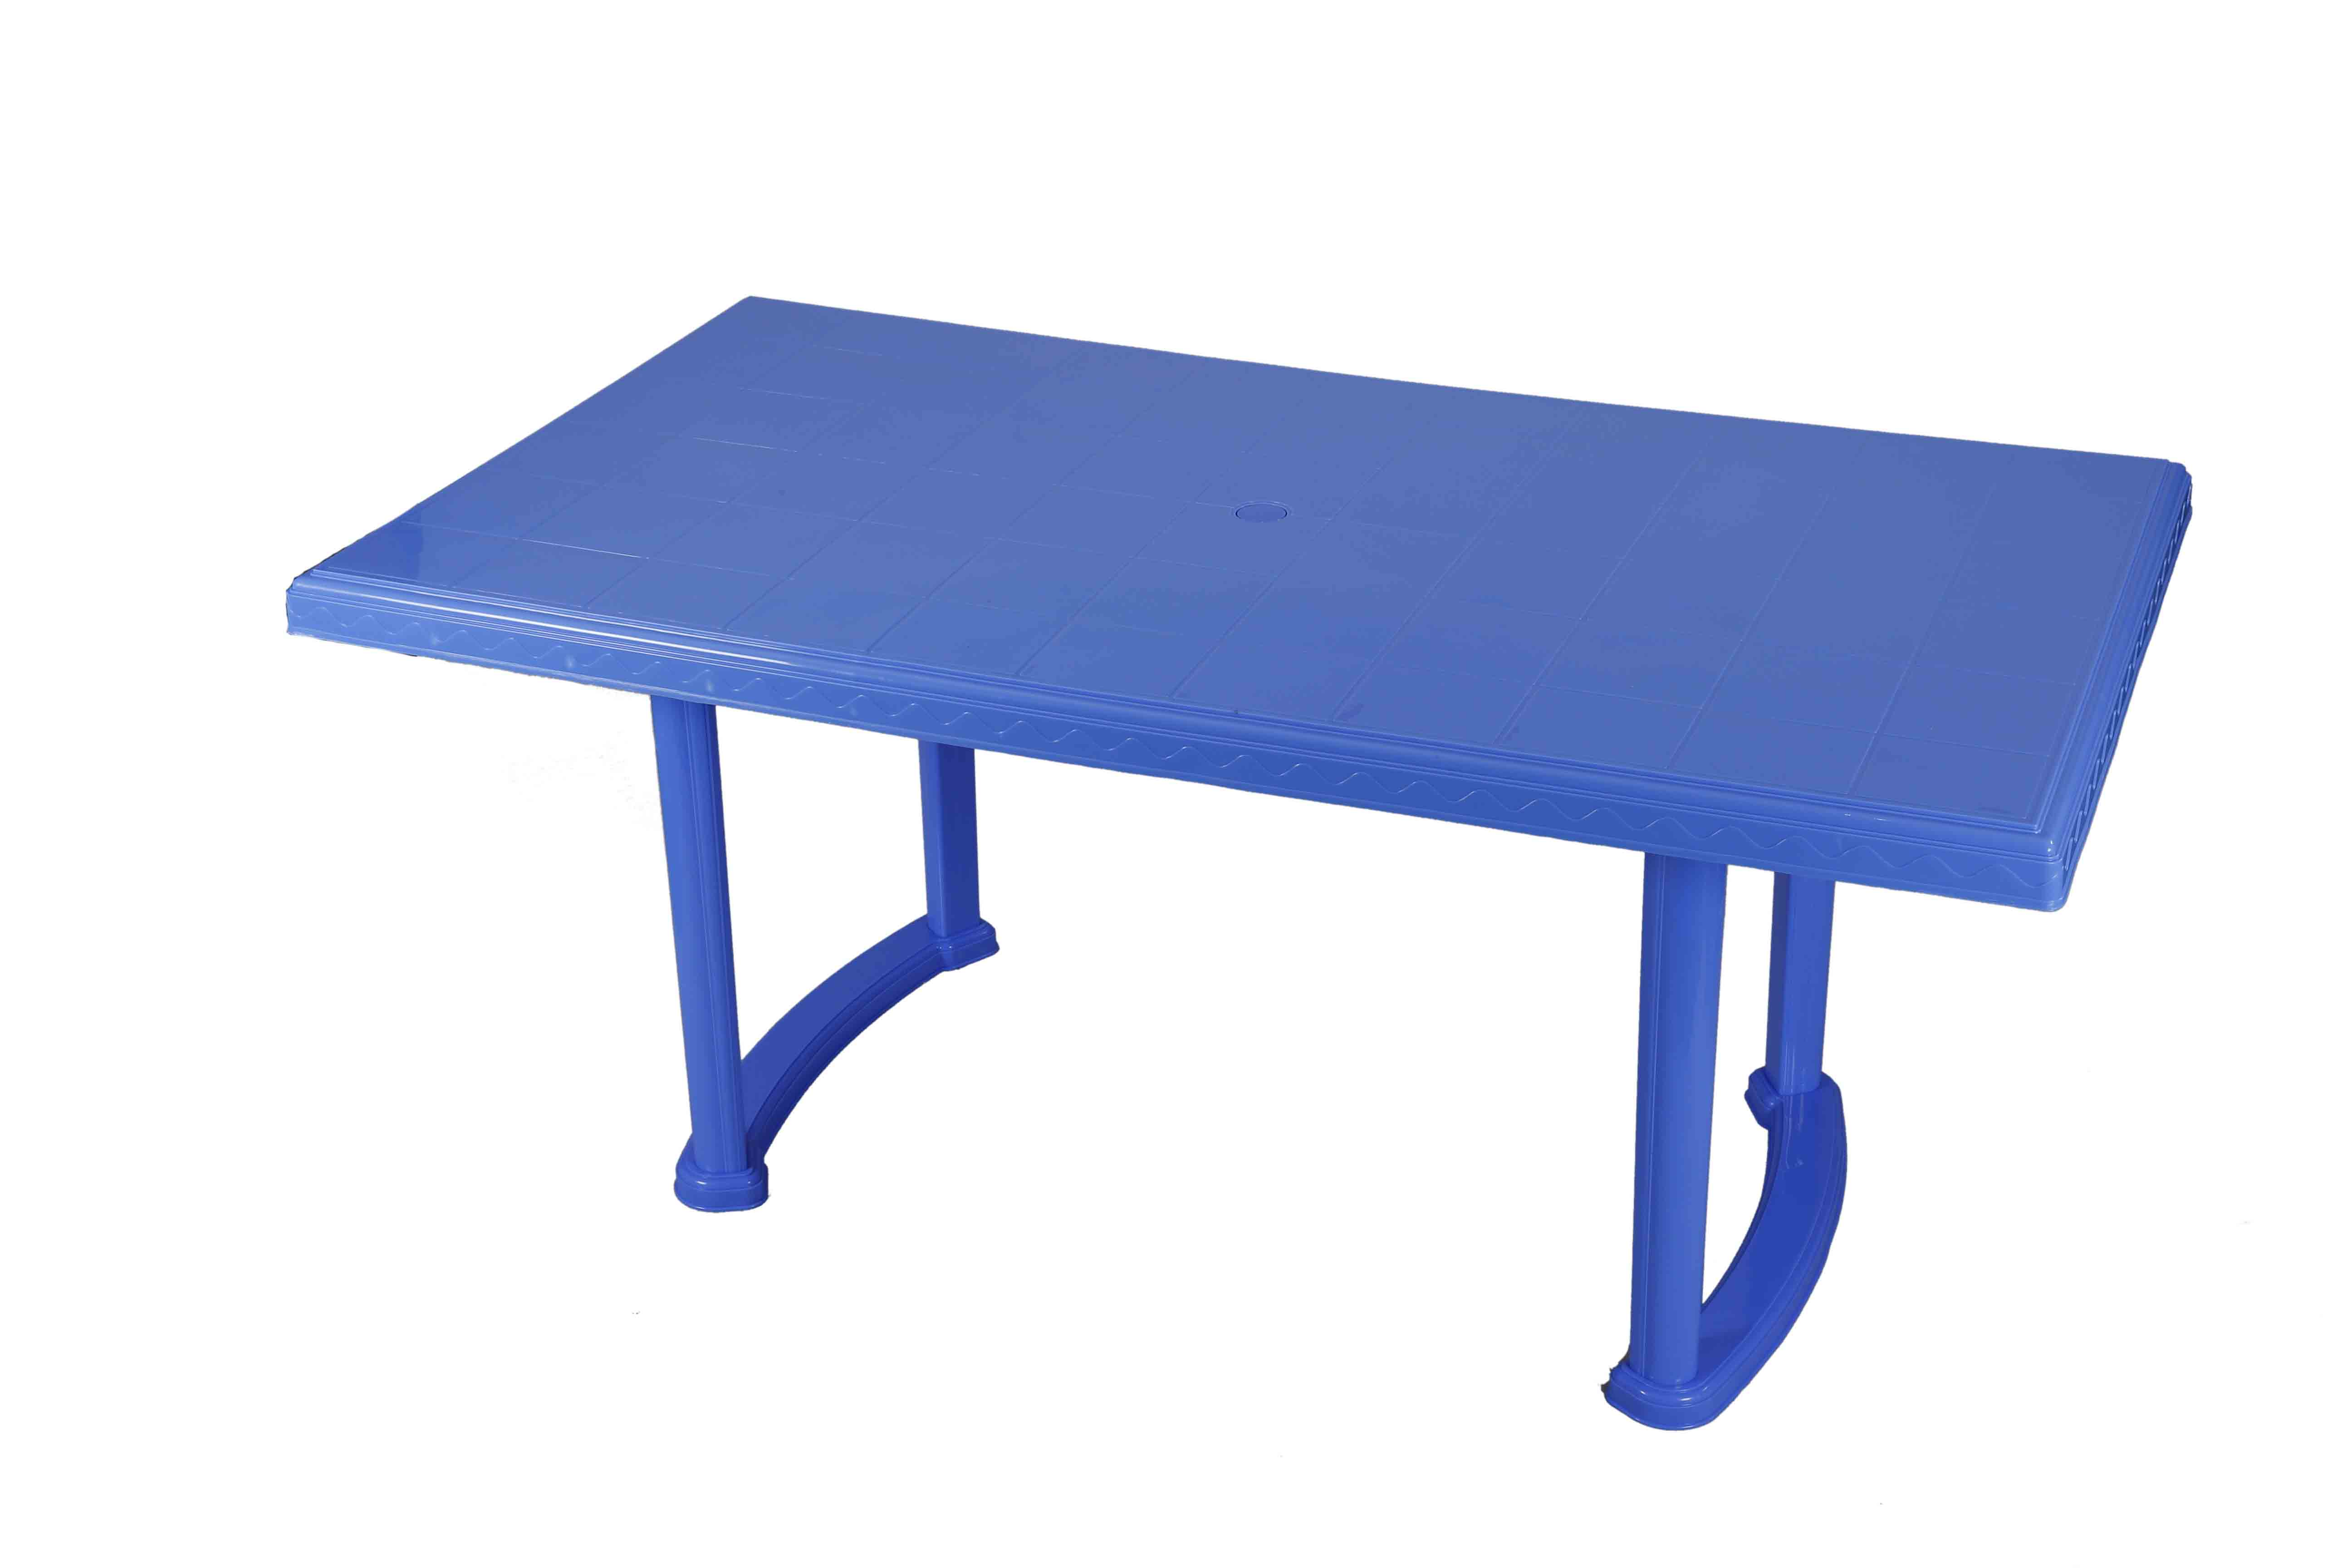 Decorate Table 6 Seated PlasLeg – SM Blue